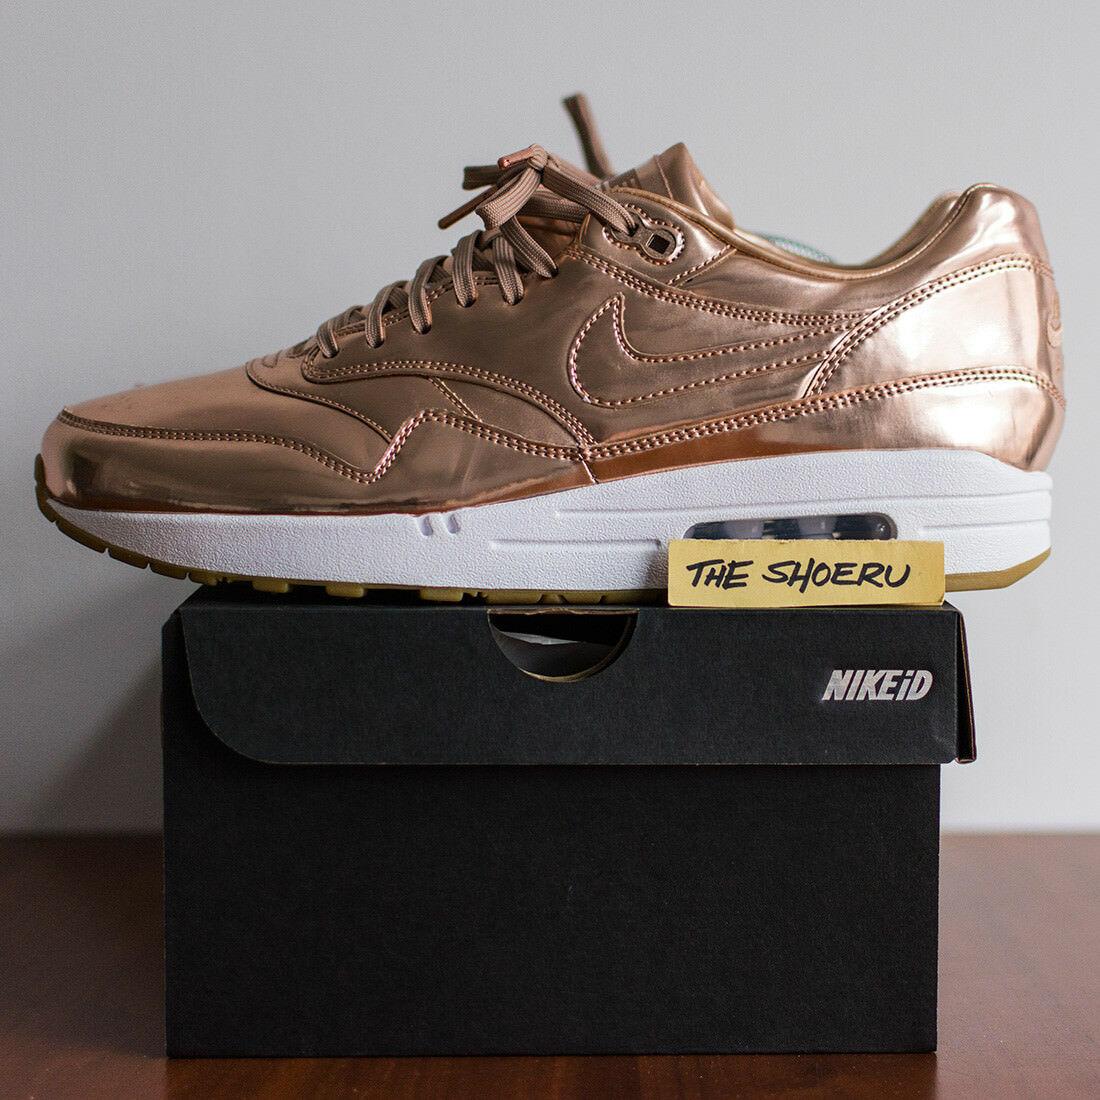 Nike Air Max 1 ID Liquid Metal Bronze/Rose Gold Size US 11 1 97 wotherspoon MINT